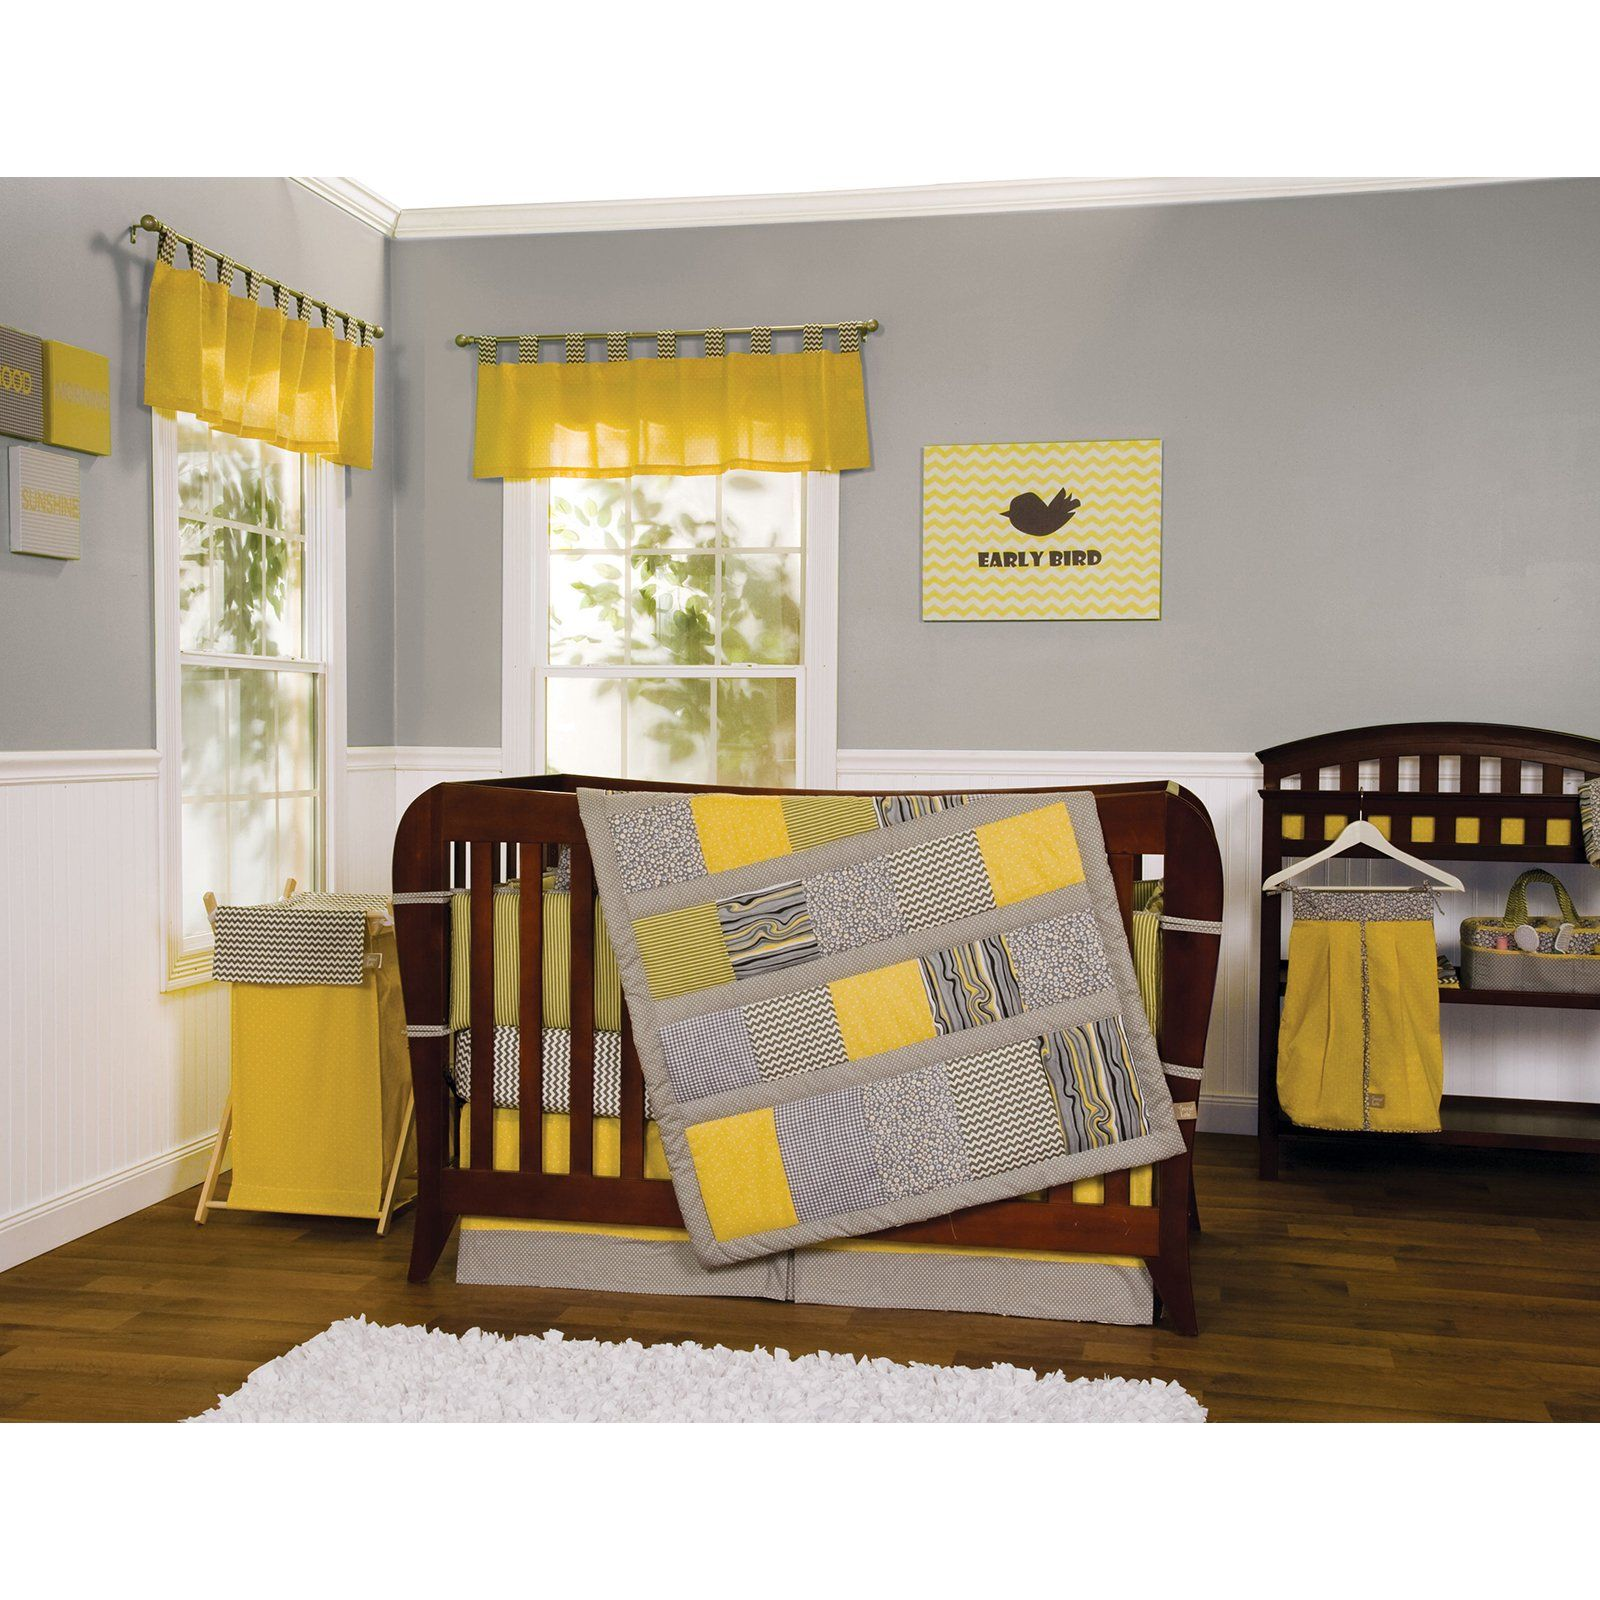 Trend Lab 3 Piece Hello Sunshine Crib Bedding Set $9224